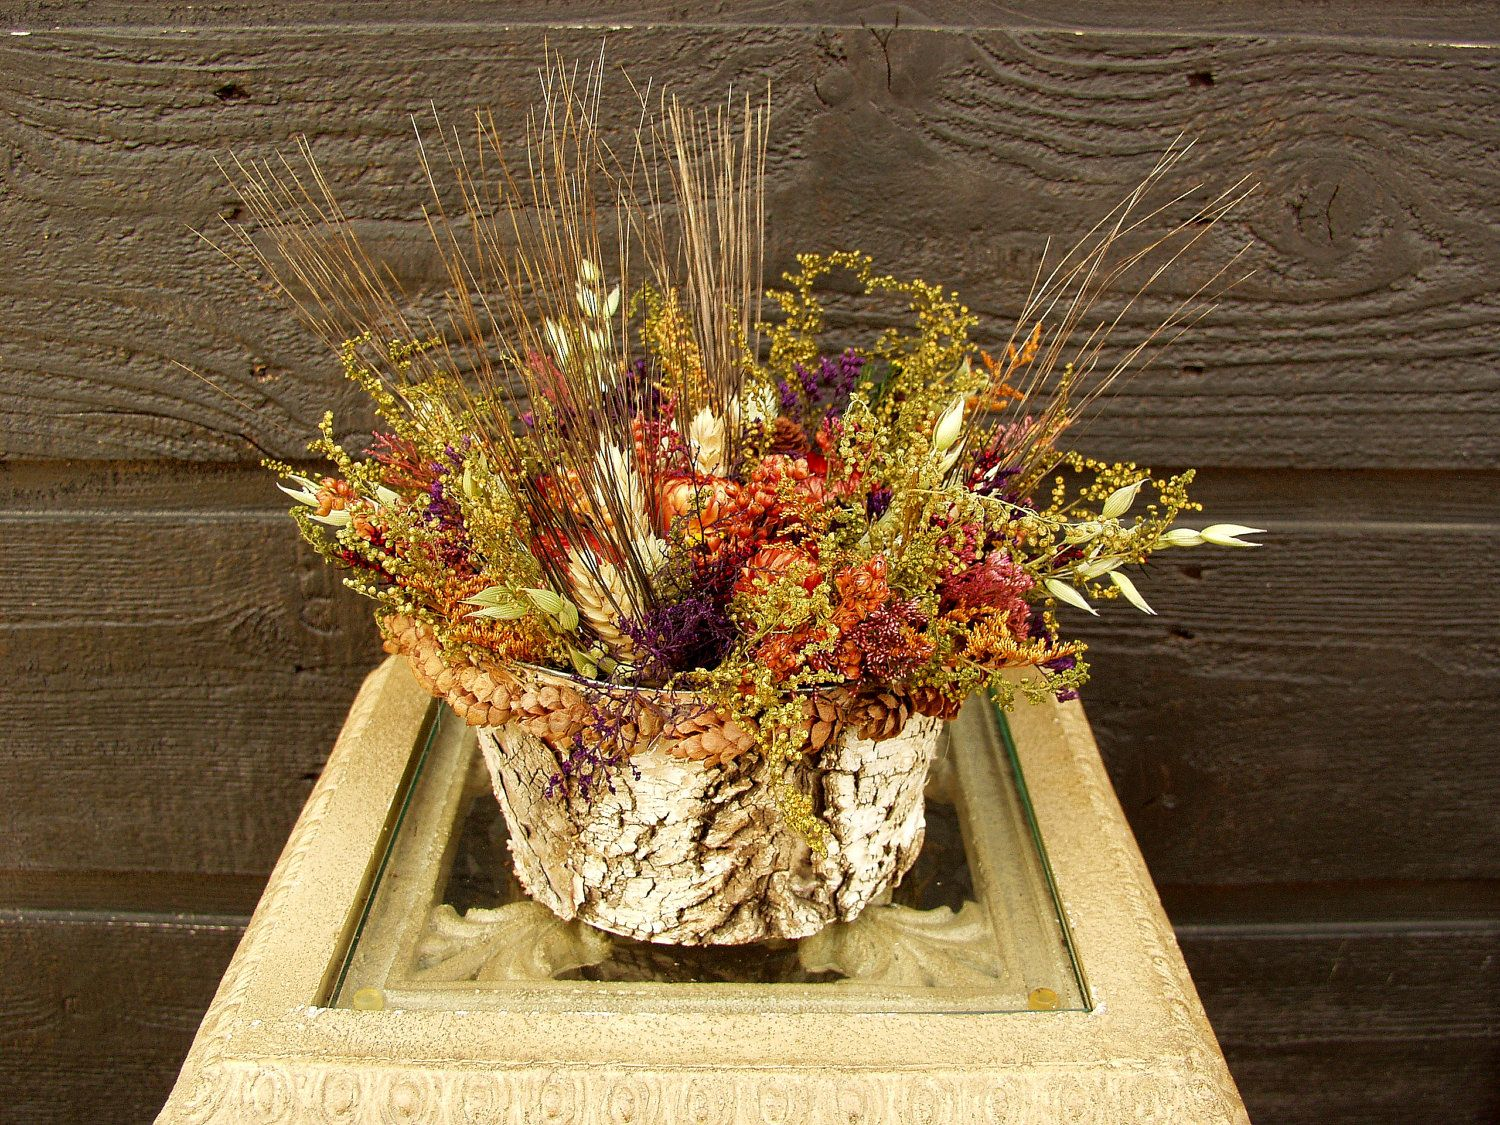 Wheat Floral Dried Flower Arrangement With Sweet Annie Strawflowers And Wheat 021 Dried Flower Arrangements Dried Flowers Flower Arrangements